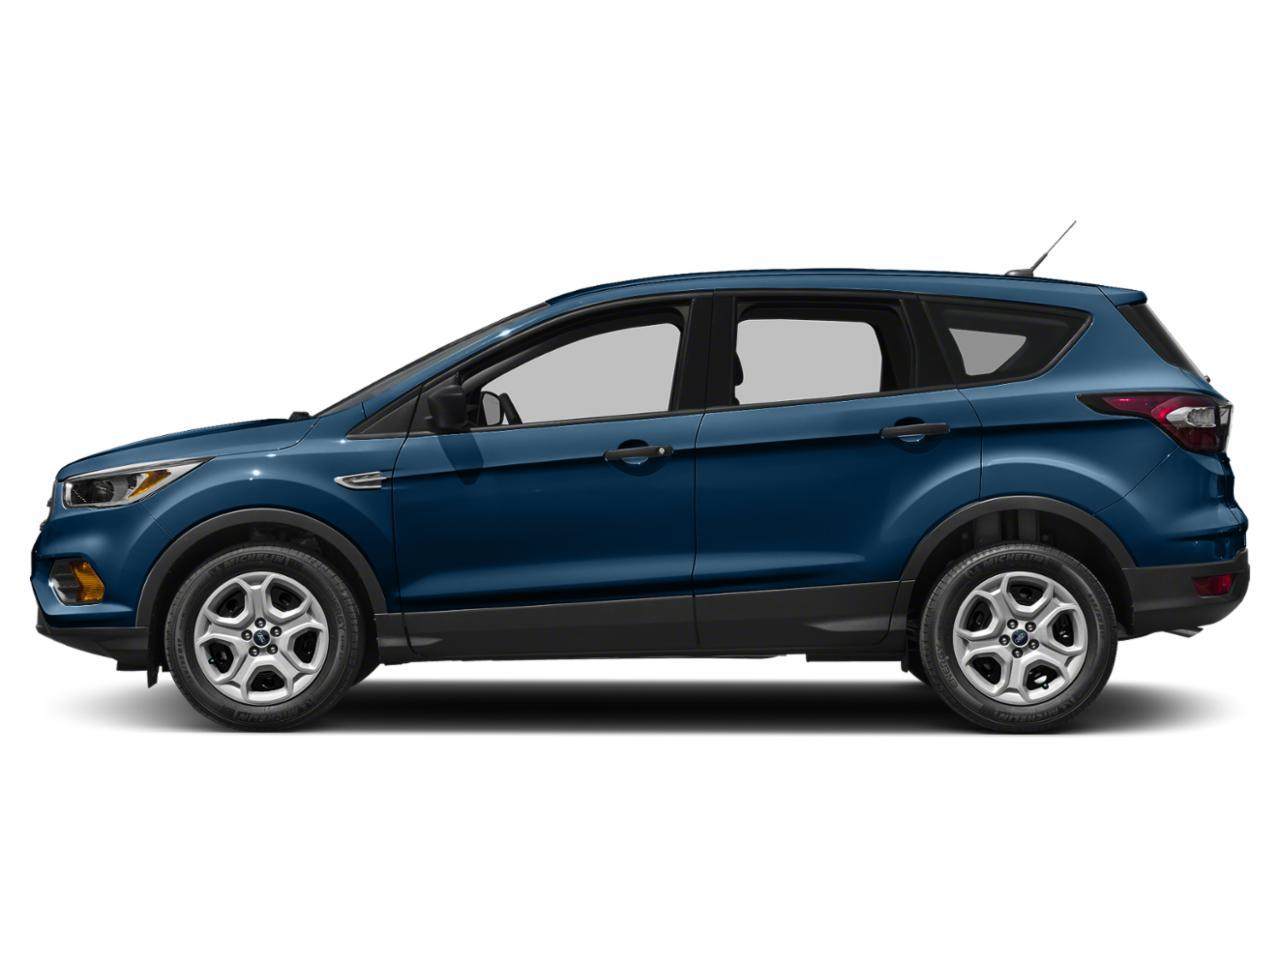 Used 2018 Ford Escape SE with VIN 1FMCU9GDXJUC76156 for sale in Park Rapids, Minnesota